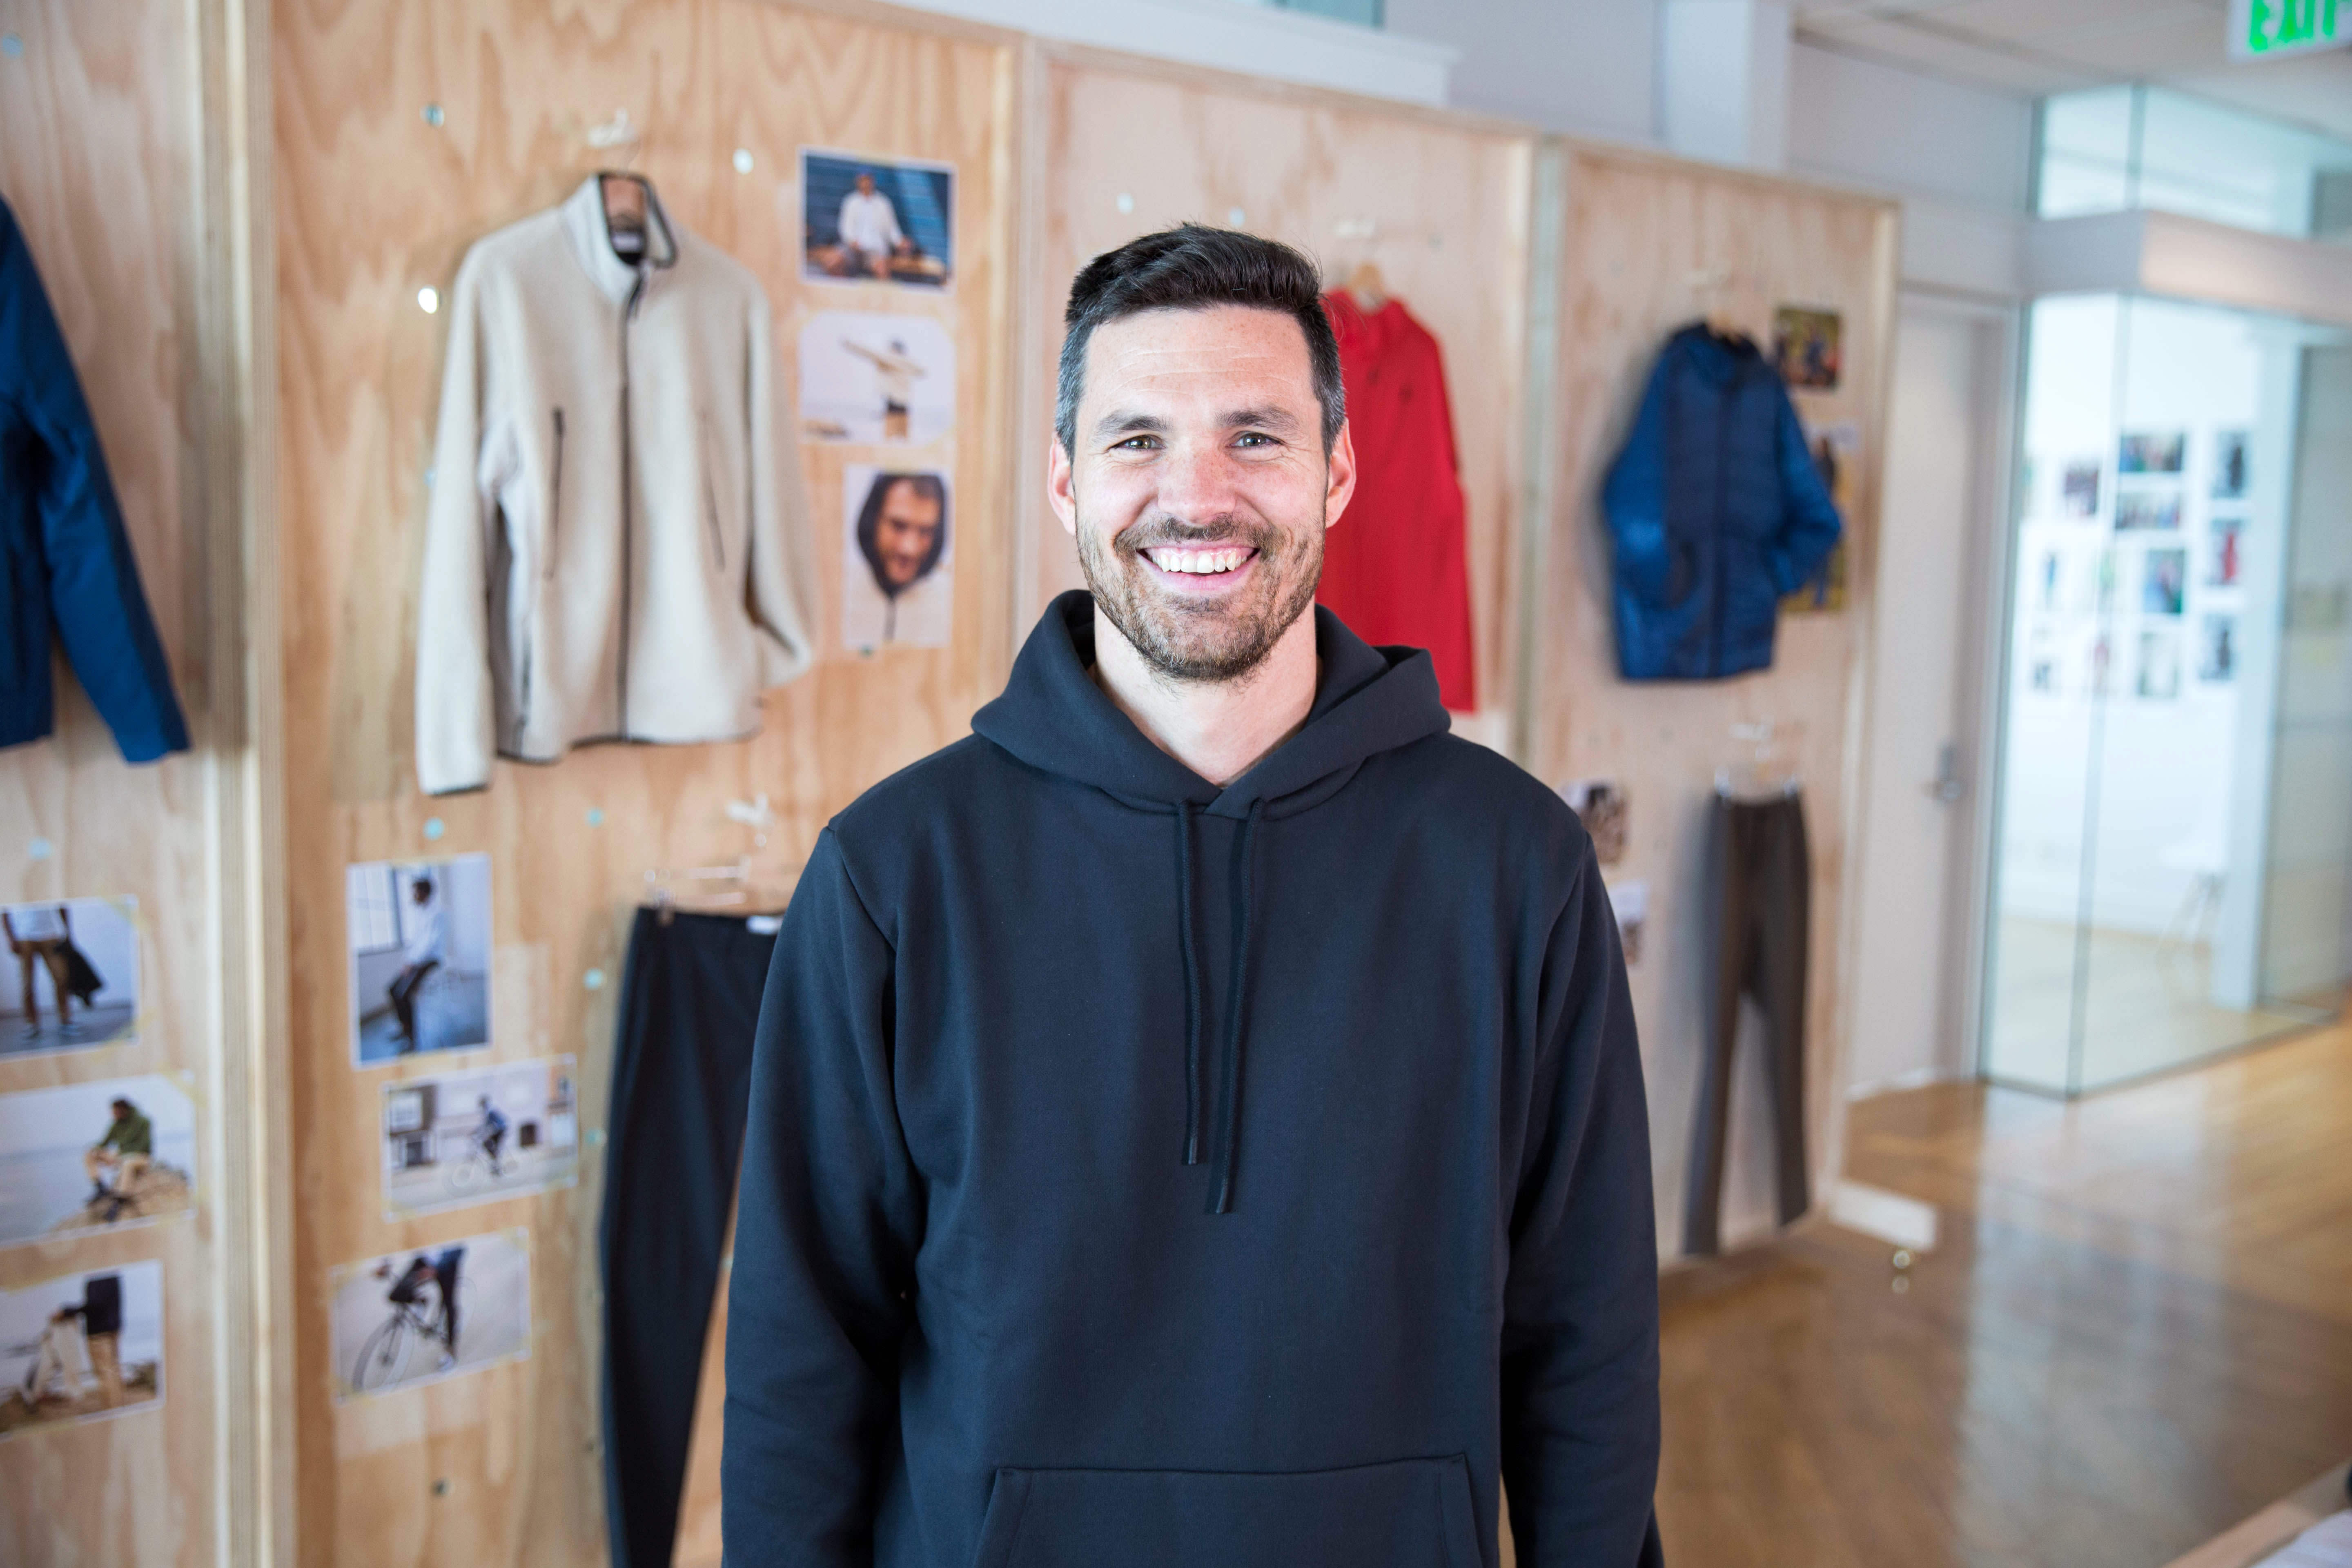 Target Office Wear Gap Is Launching Hill City Athleisure Wear For Men Similar To Athleta